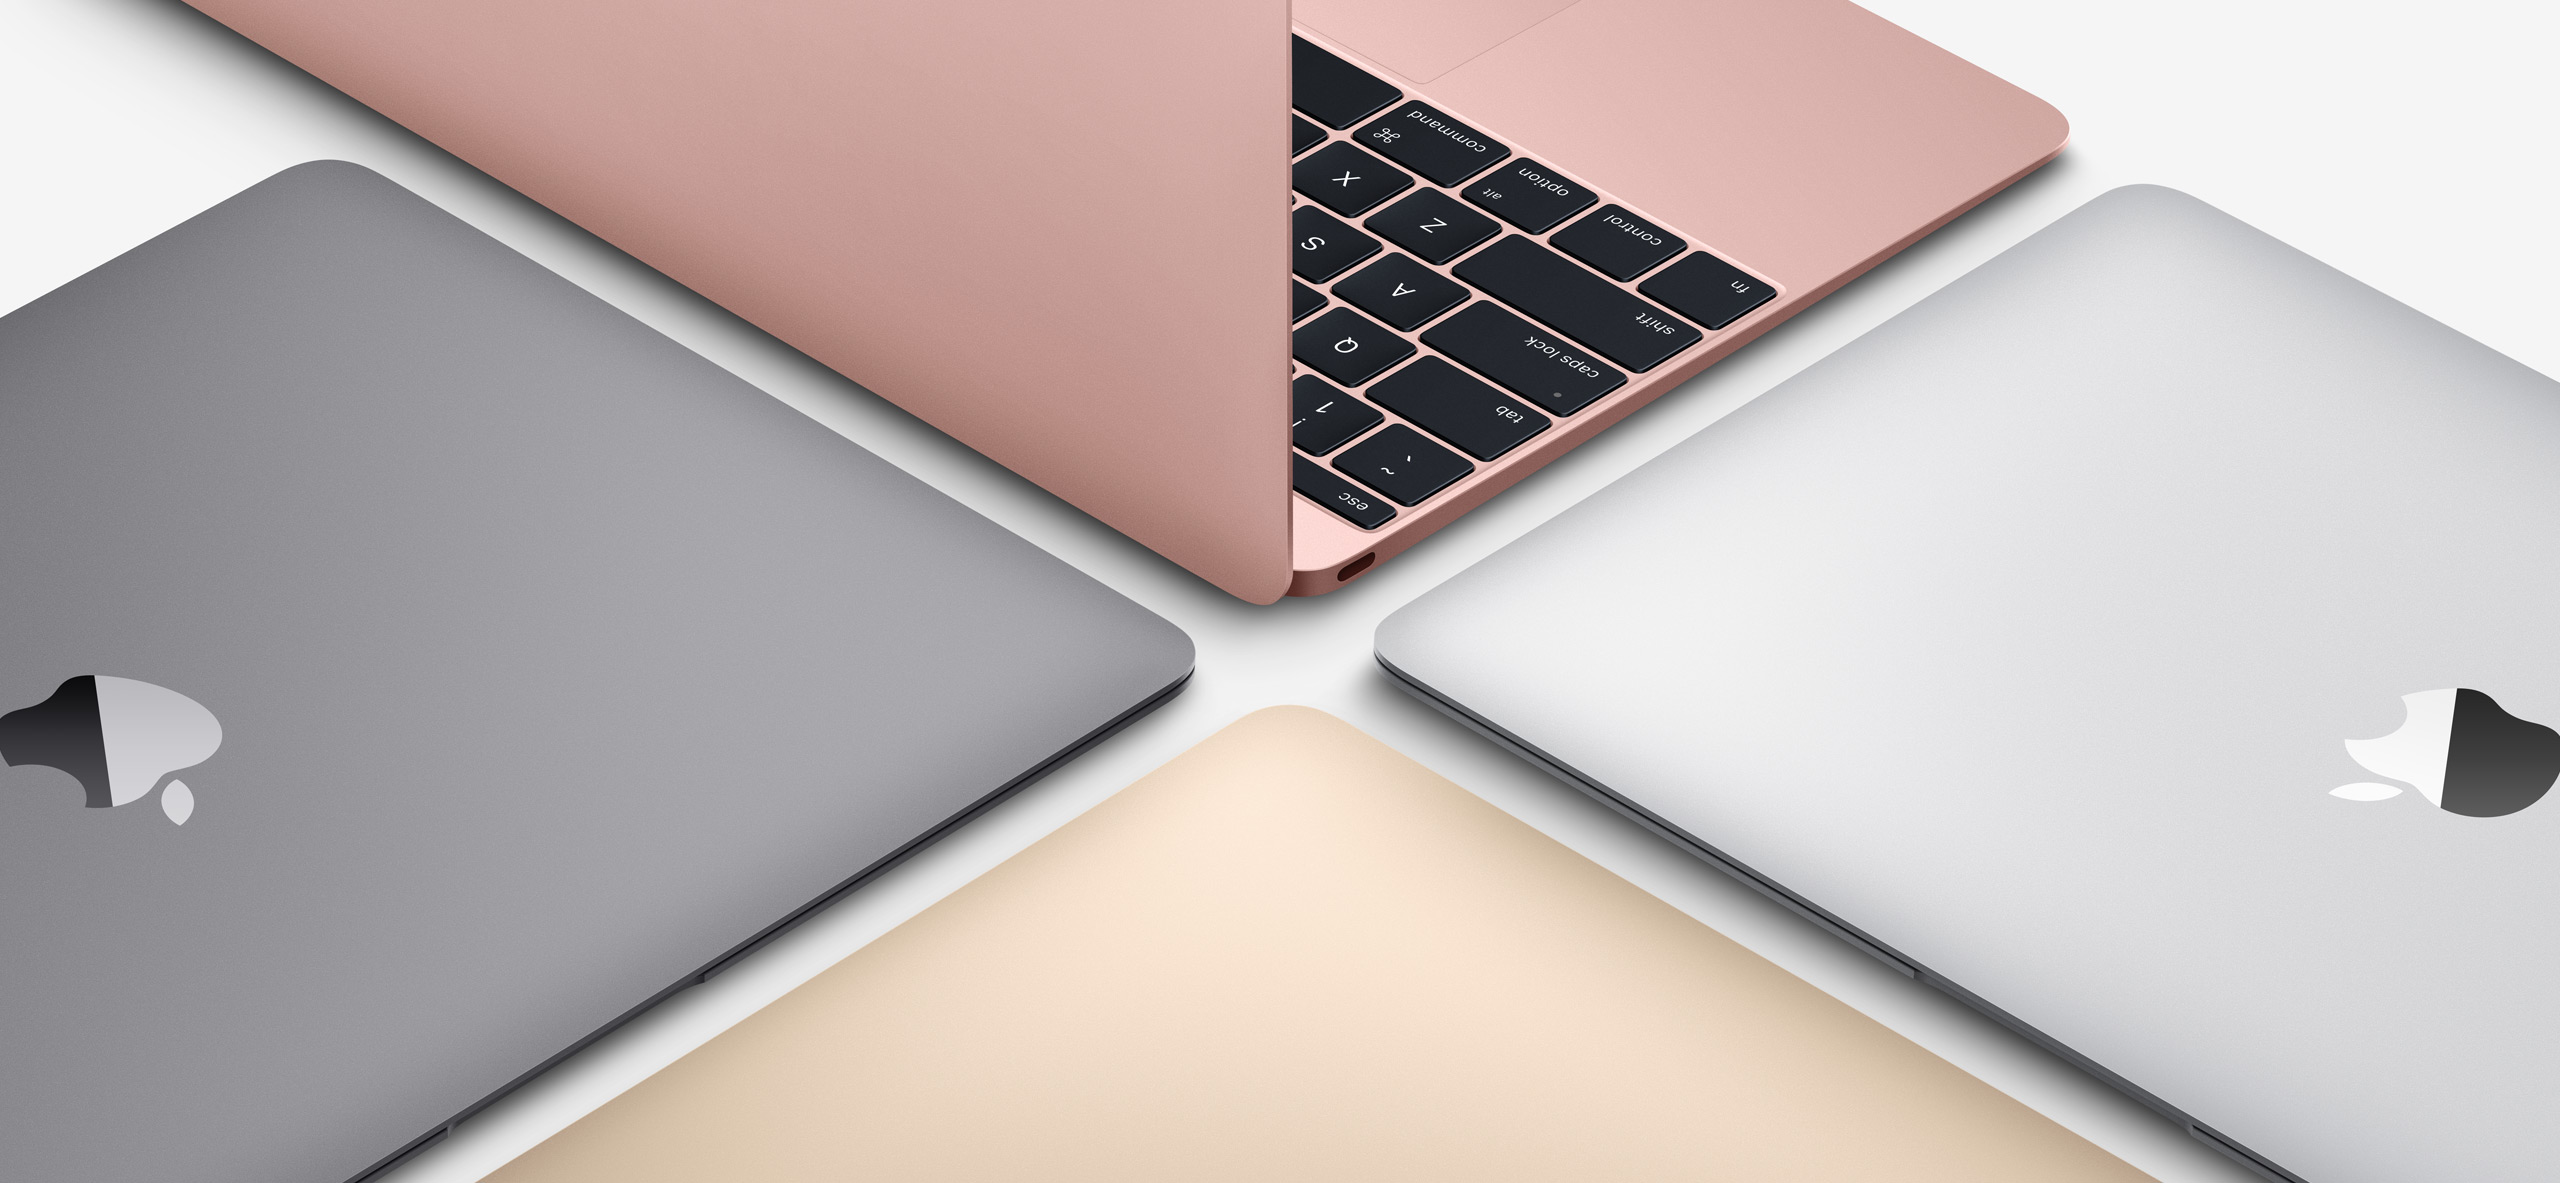 macbook air couleur